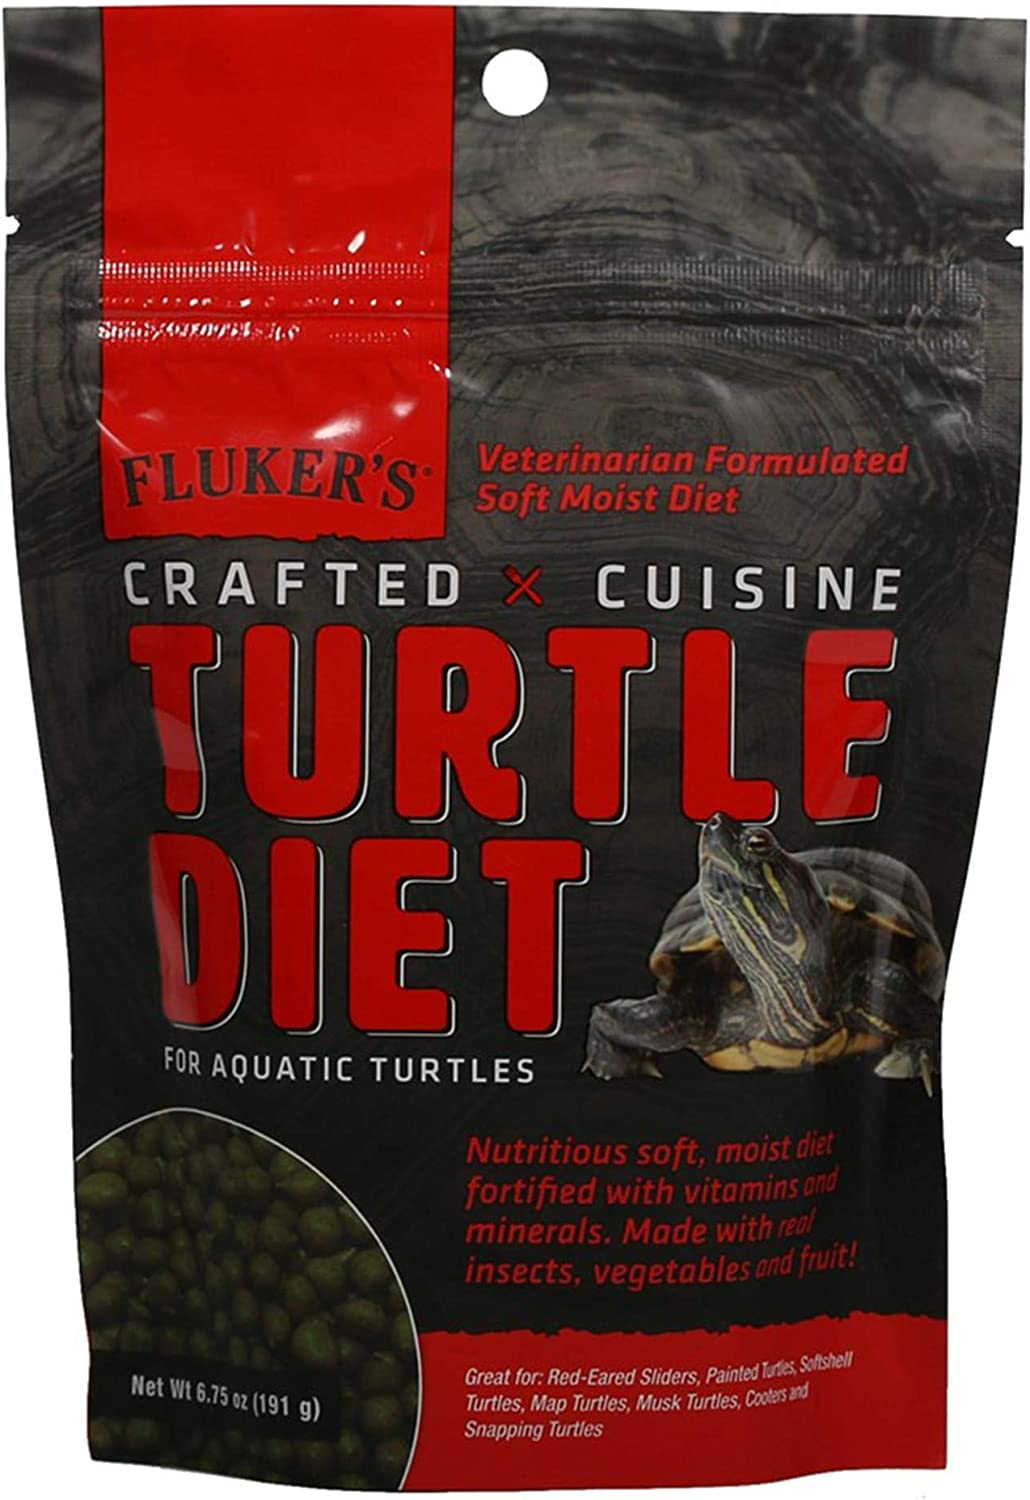 Fluker's New Crafted Cuisine Turtle Diet (6.75 oz.)